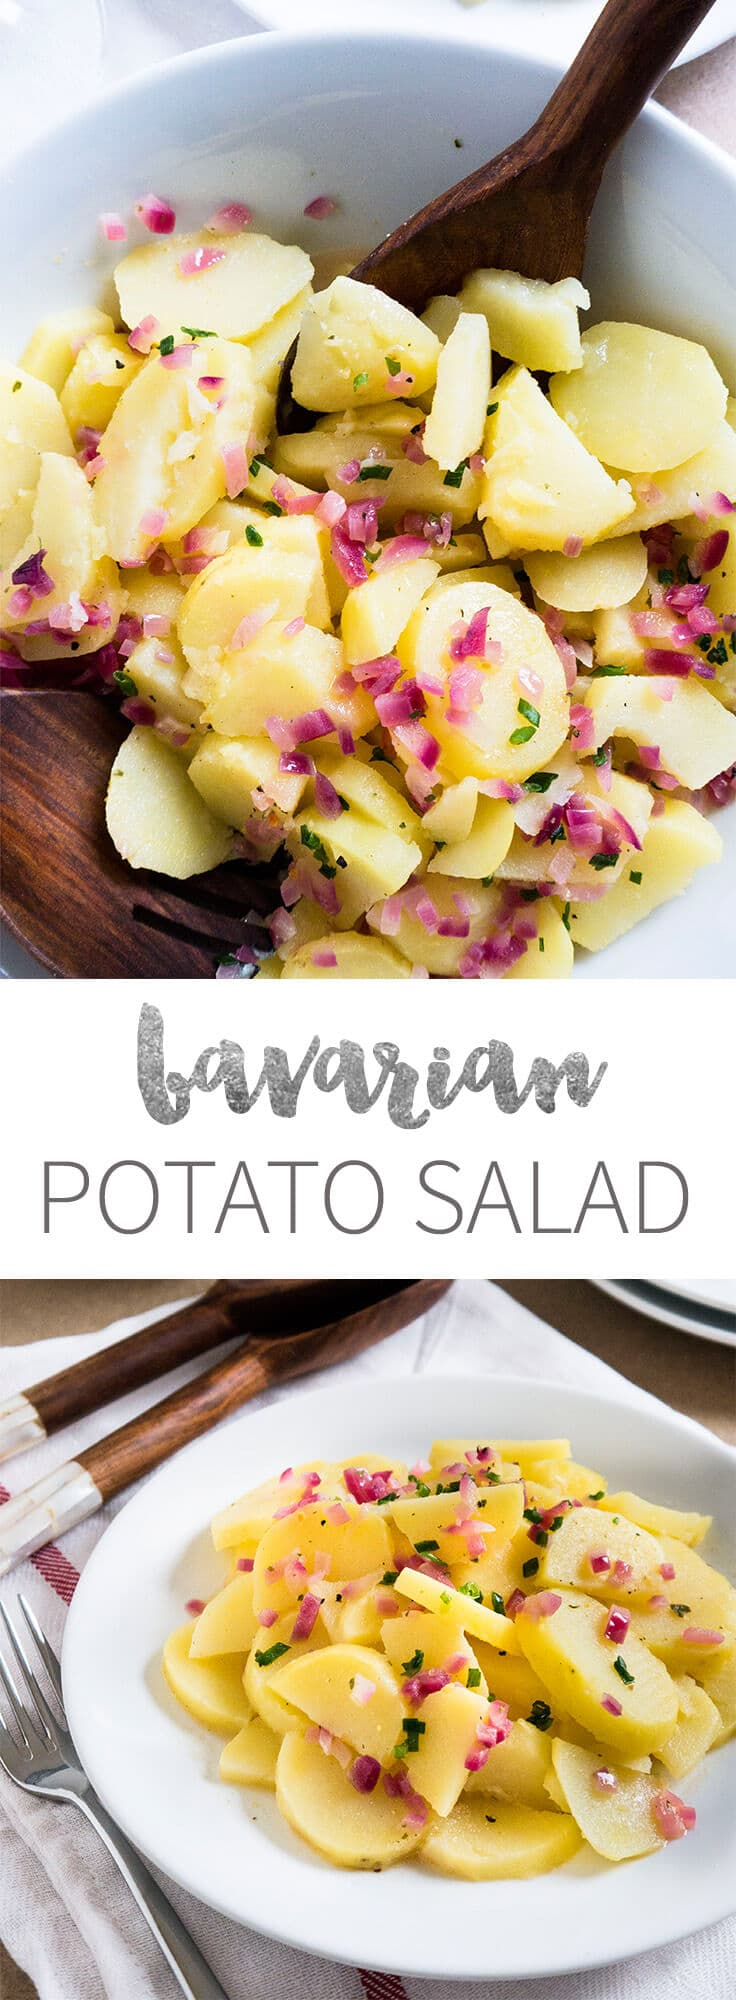 potato salad potato salad dad s potato salad oil and vinegar potato ...